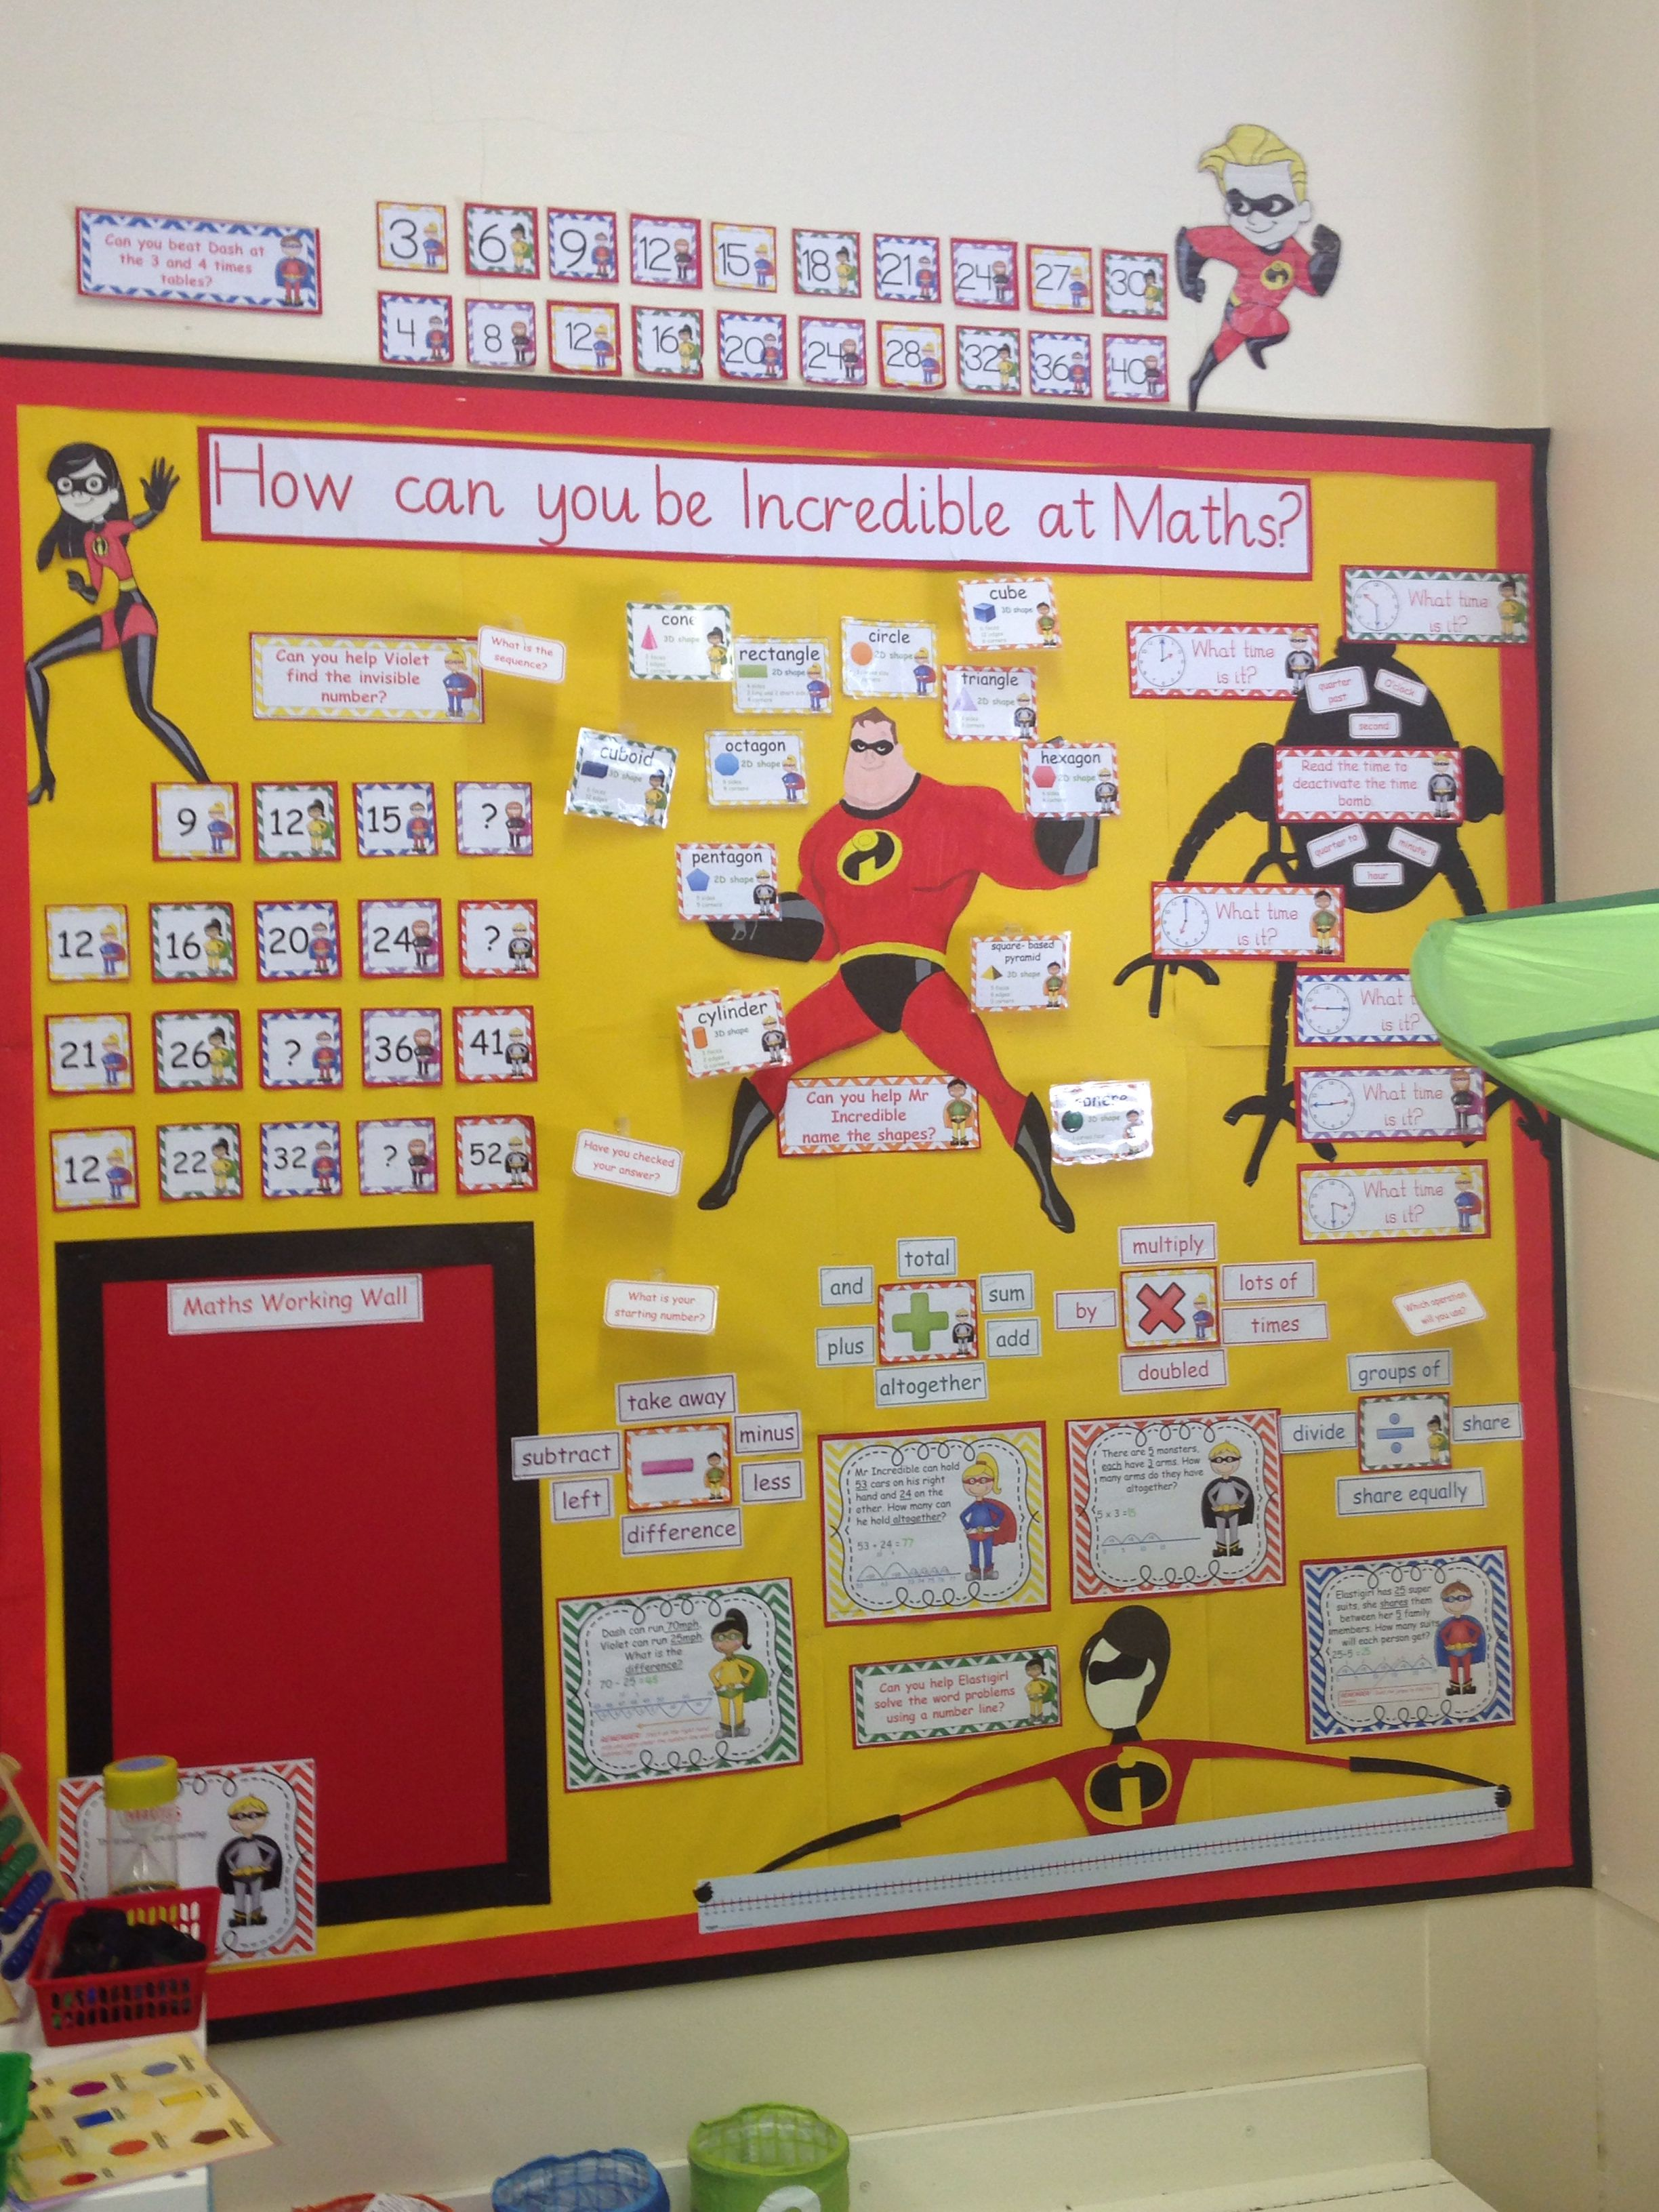 The Incredibles maths display | Teaching | Pinterest | Maths display ...